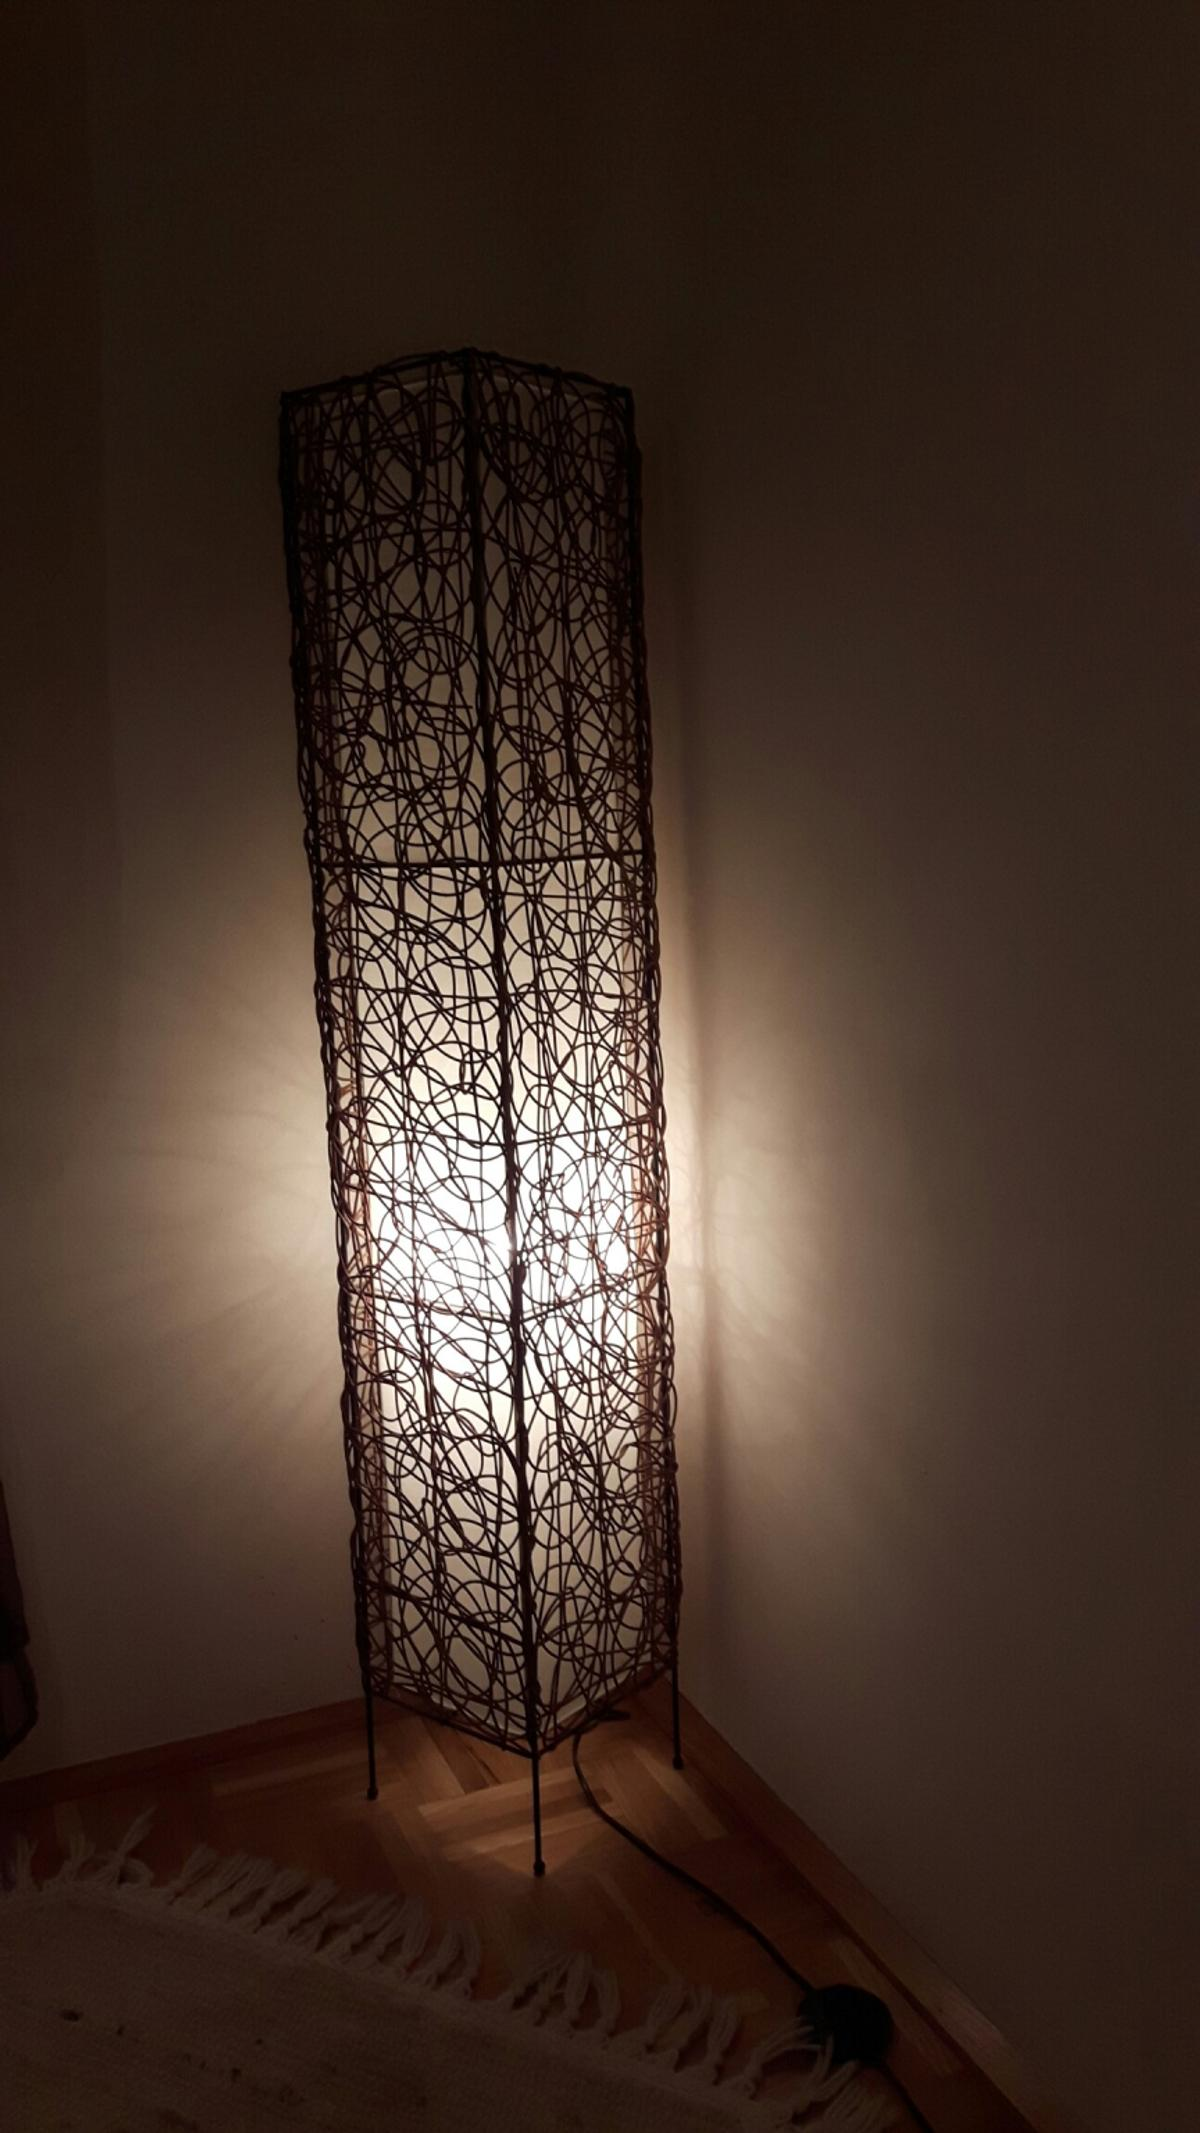 Rattan Stehlampe In 8665 Langenwang For 15 00 For Sale Shpock